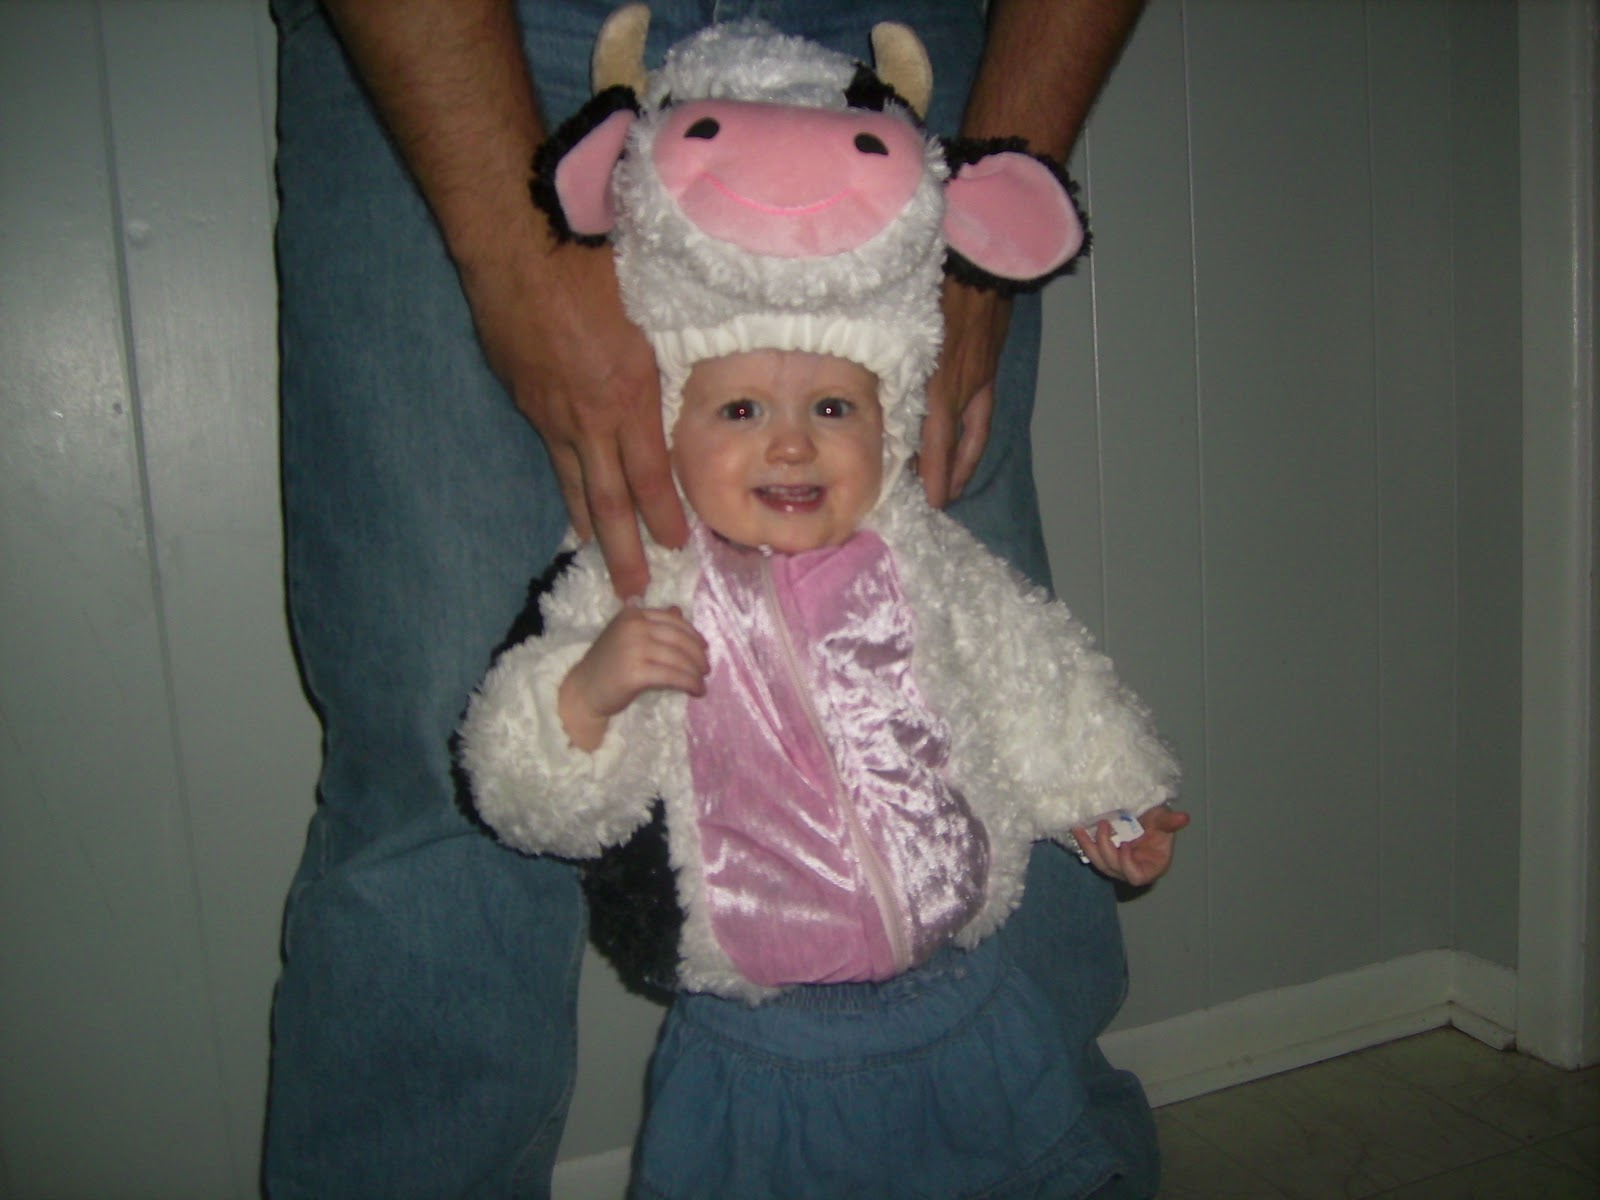 Cow costume from Goodwill (great for Chick-fil-A cow appreciation day!  sc 1 st  Thrifty Texas Penny & Where You can Find Inexpensive Halloween Costumes